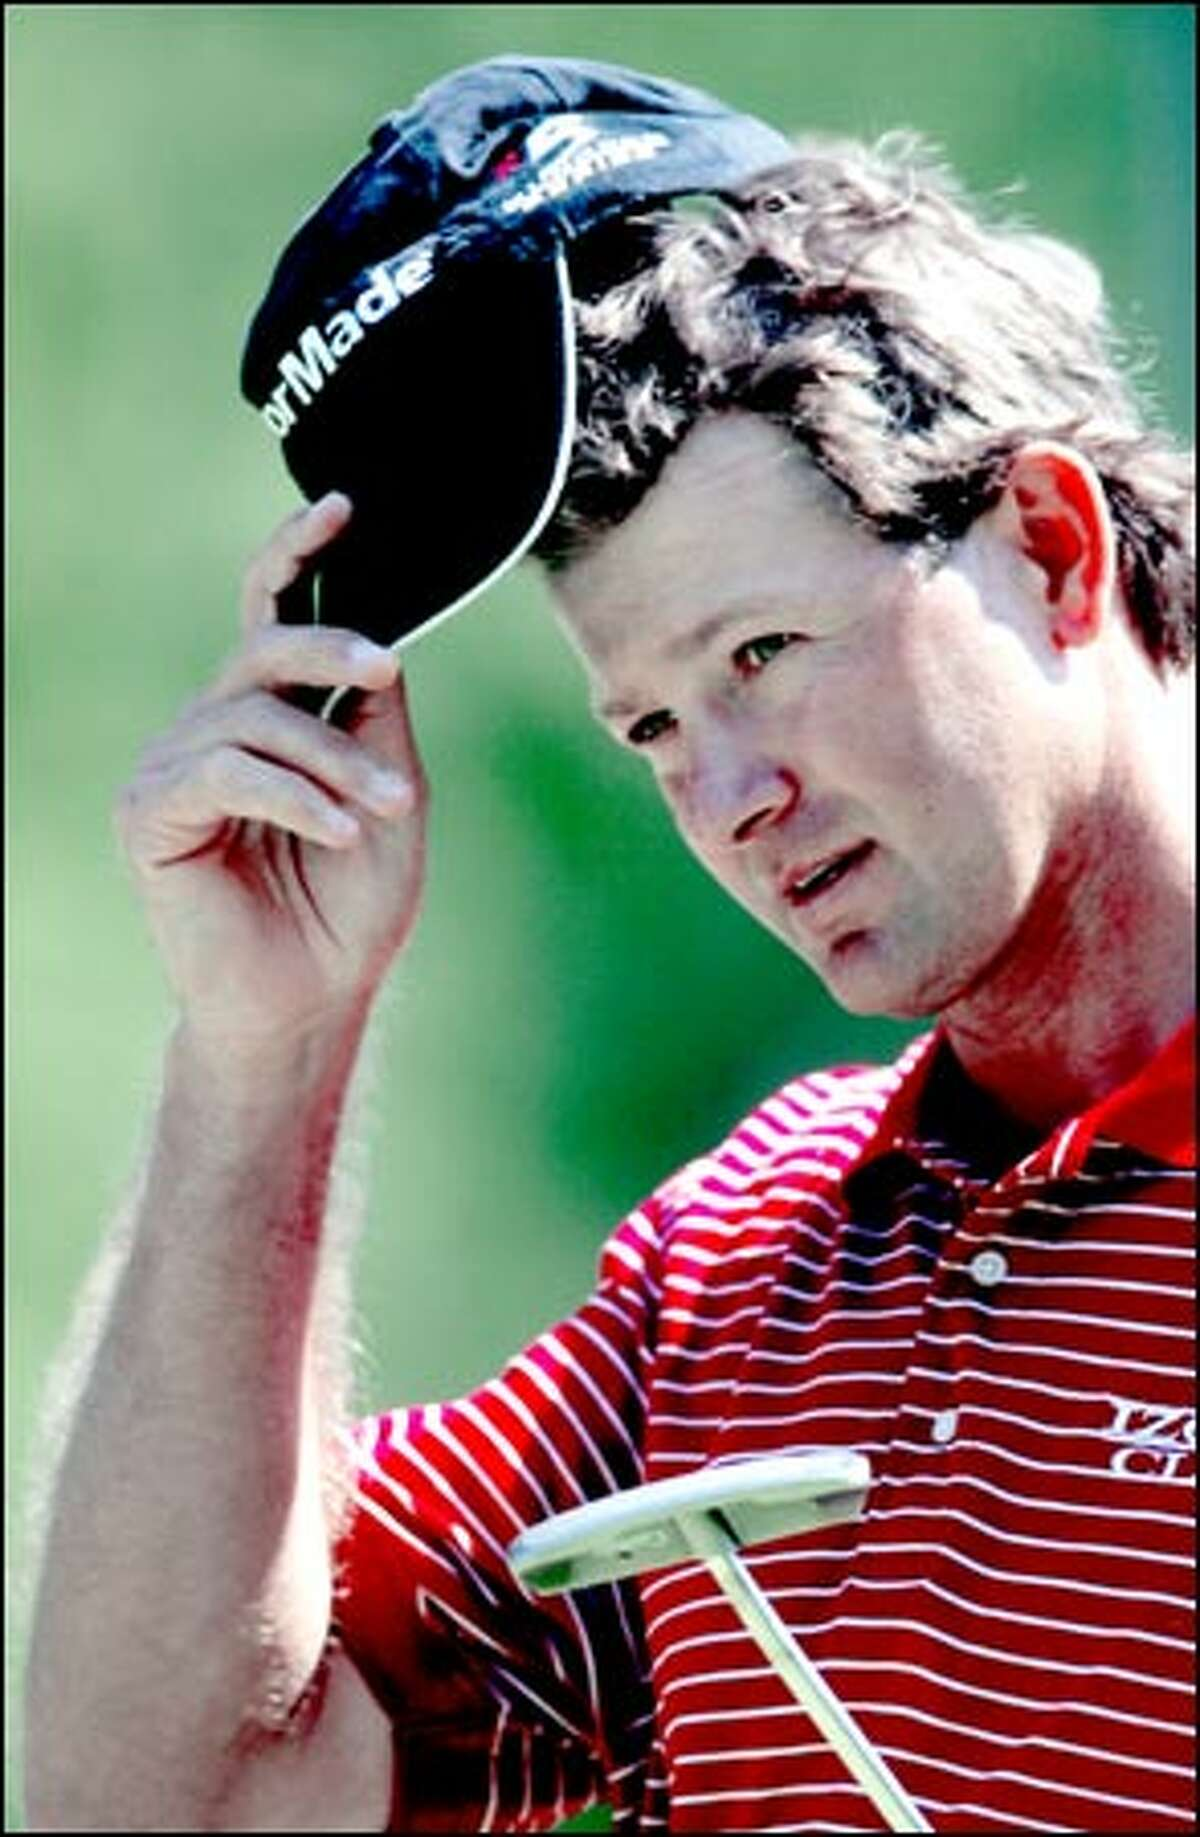 Pro golfers are walking billboards for golf equipment, tournaments, investment firms and other golf-friendly companies around the world. Retief Goosen of South Africa is one of several contenders wearing